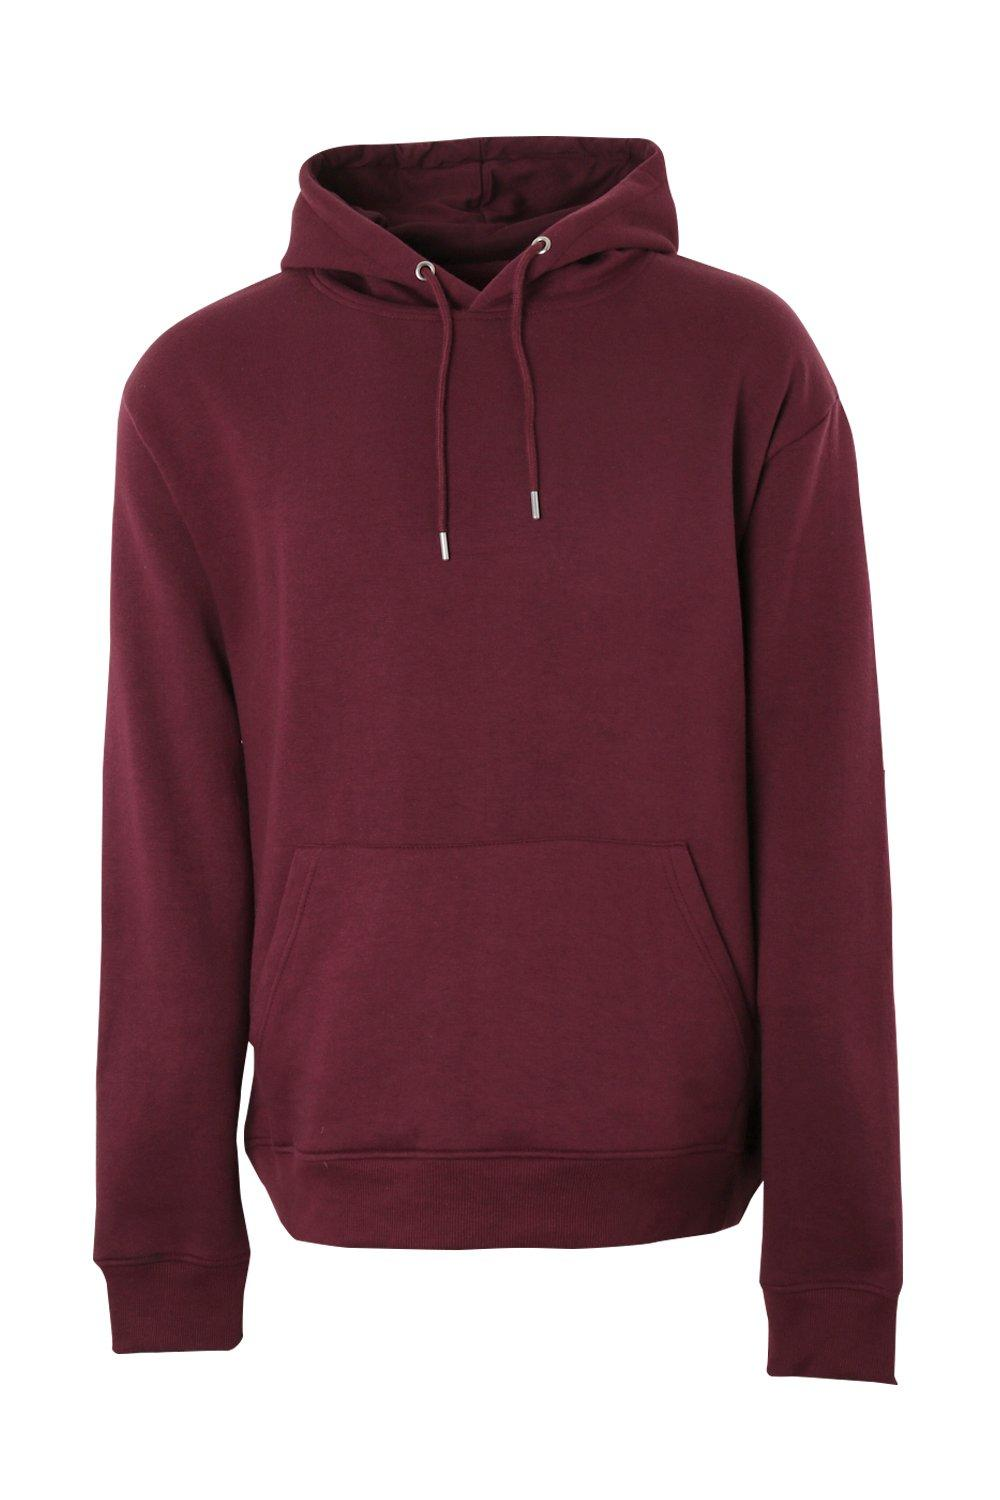 boohooMAN wine Big And Tall Basic Over The Head Hoodie